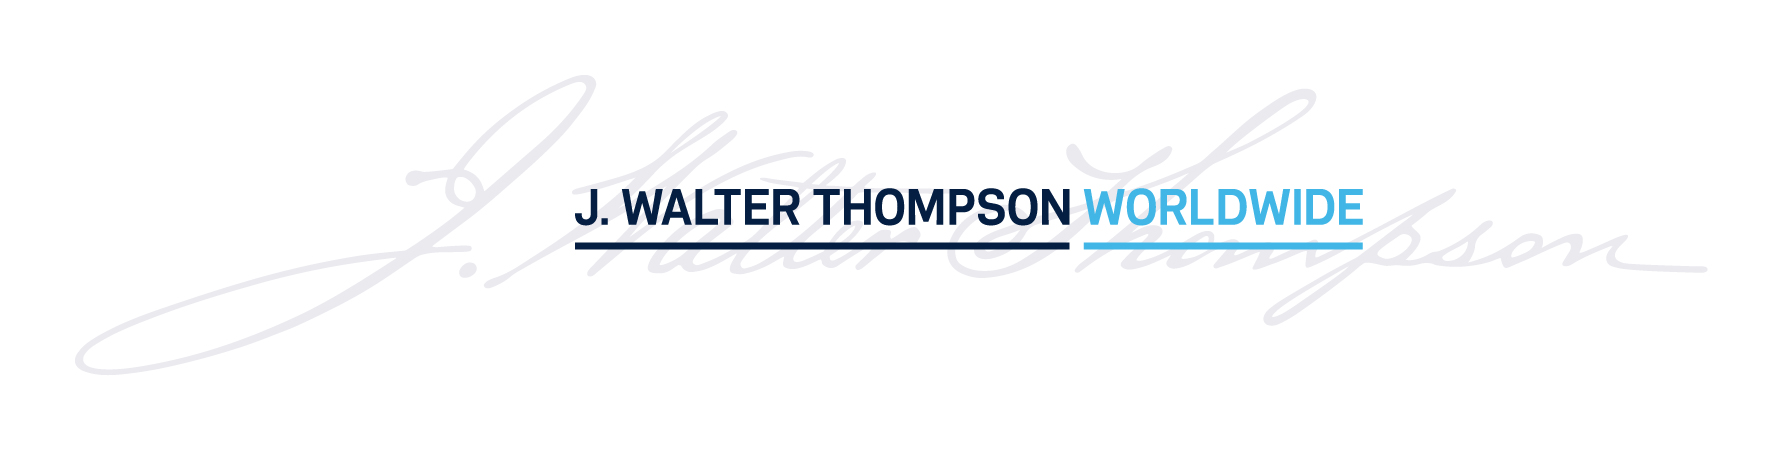 J_Walter_Thompson_official_logo